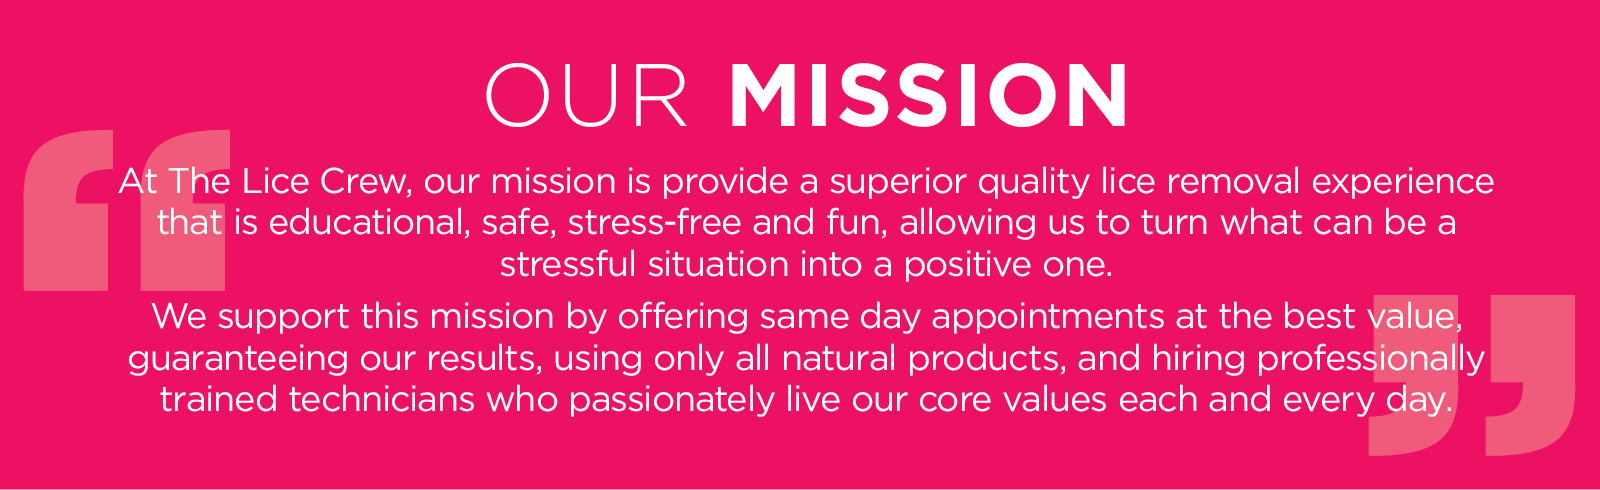 At The Lice Crew, our mission is provide a superior quality lice removal experience that is educational, safe, stress-free and fun, allowing us to turn what can be a very stressful situation into a positive one. We support this mission by offering same day appointments at the best value, guaranteeing our results, using only all natural products, and hiring professionally trained technicians who passionately live our core values each and every day.